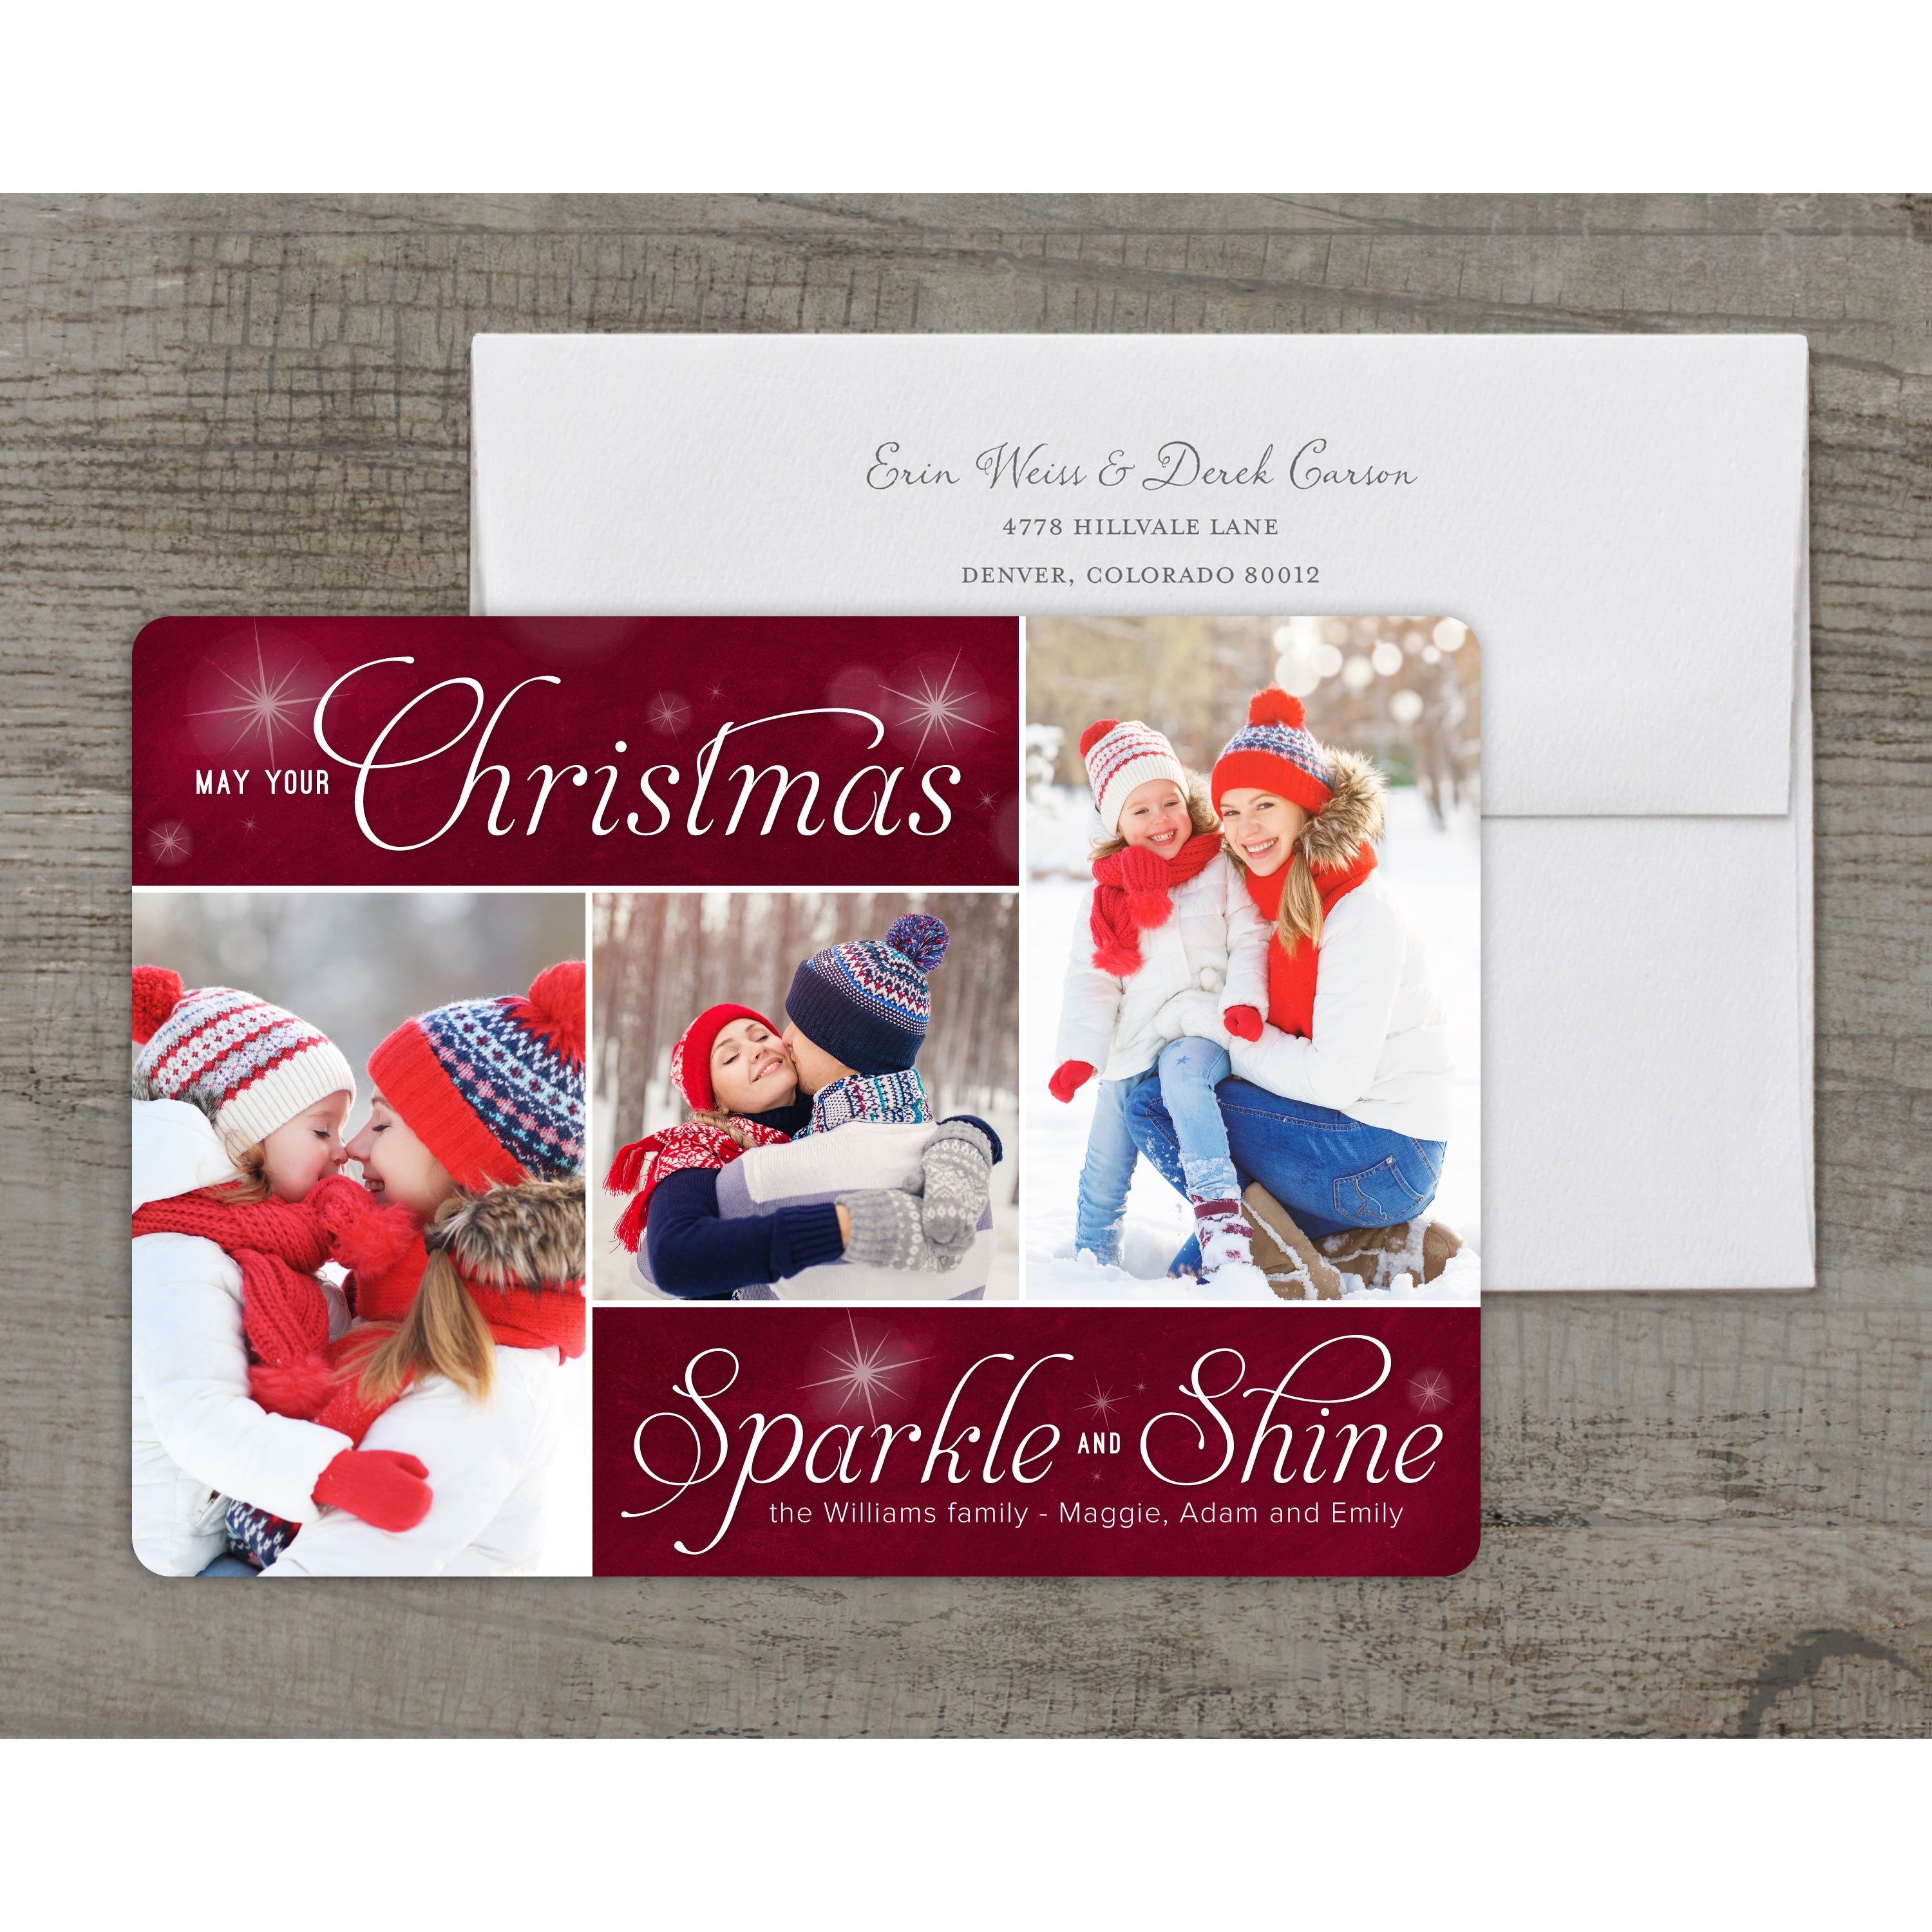 Sparkle and Shine - Deluxe 5x7 Personalized Holiday Christmas Card